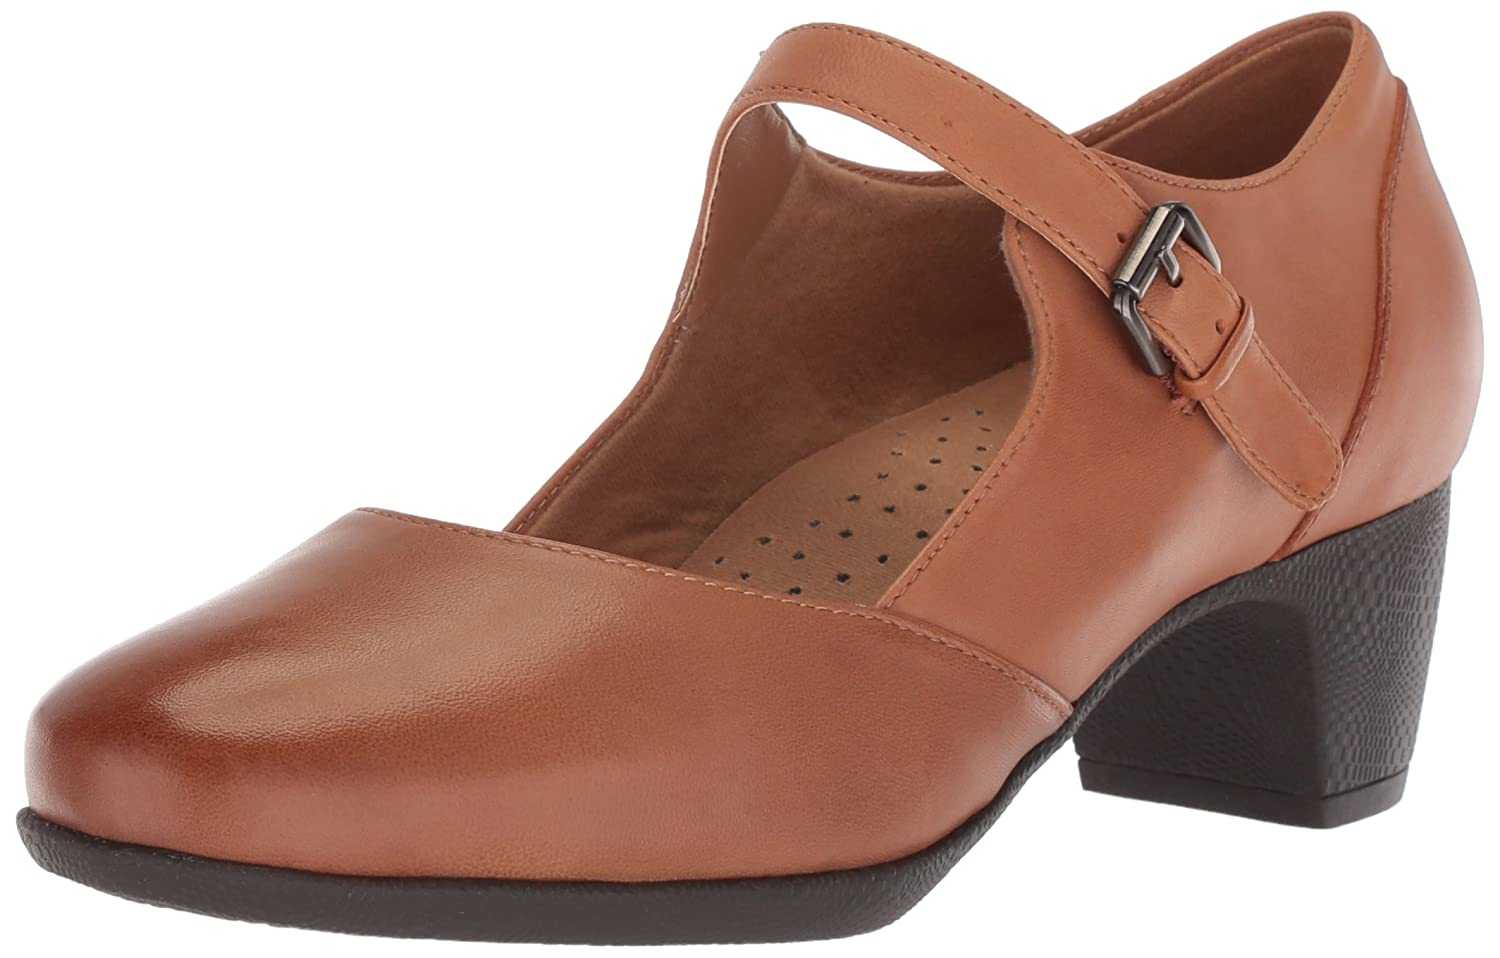 SoftWalk Women's Irish Ii Pump B073BW15CW 7.5 N US|Tan